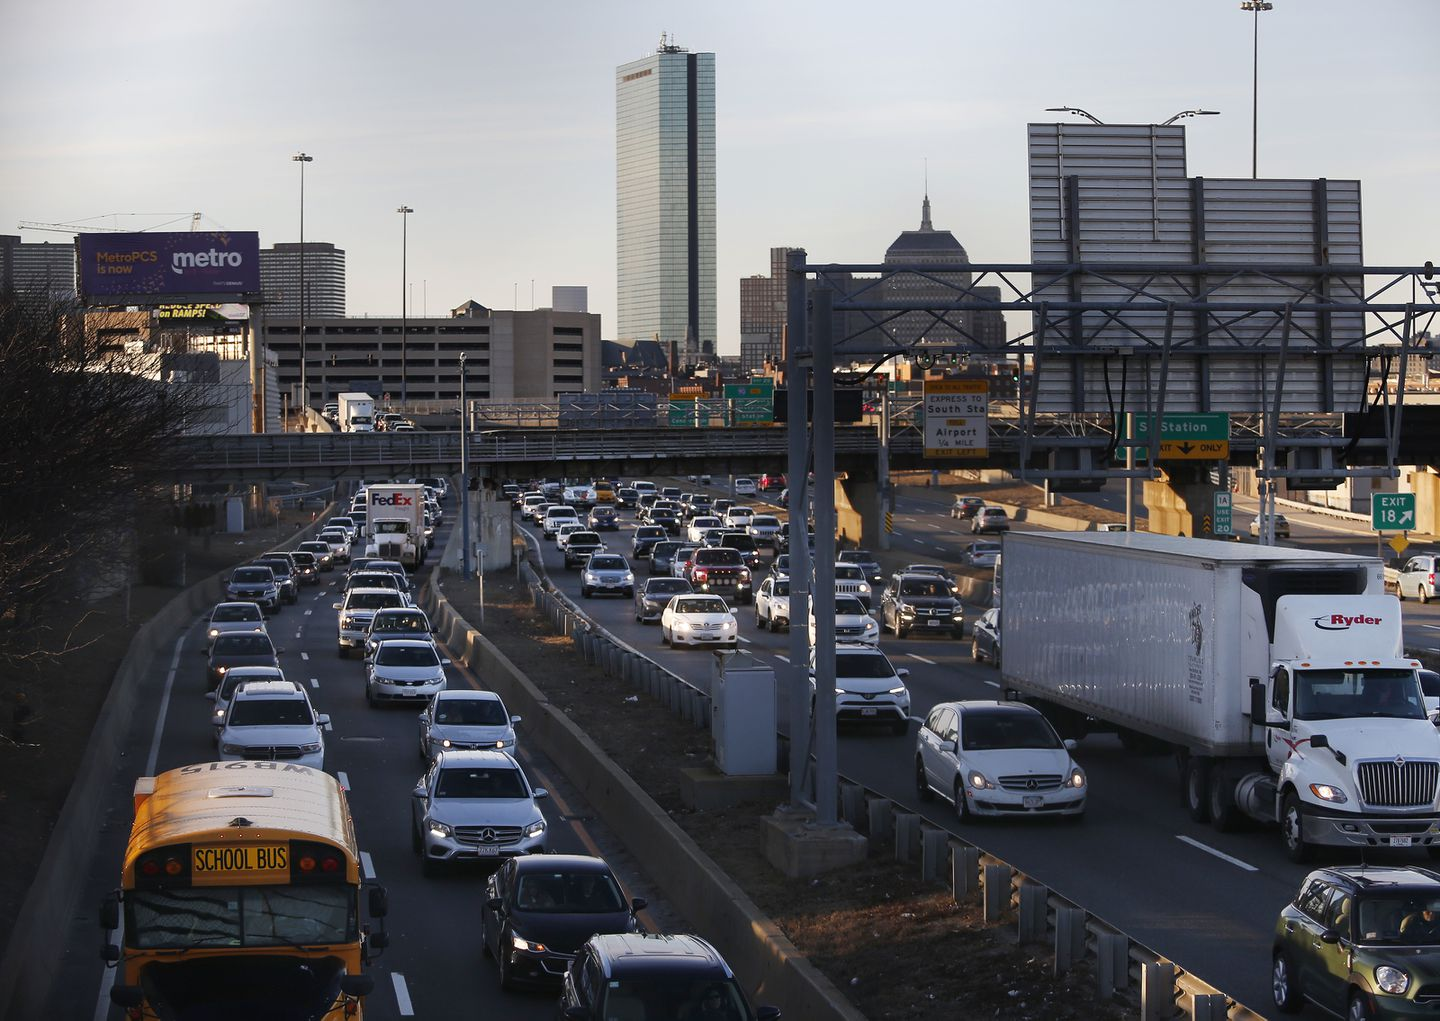 The worst gridlock in the US is right here in Boston - The Boston Globe